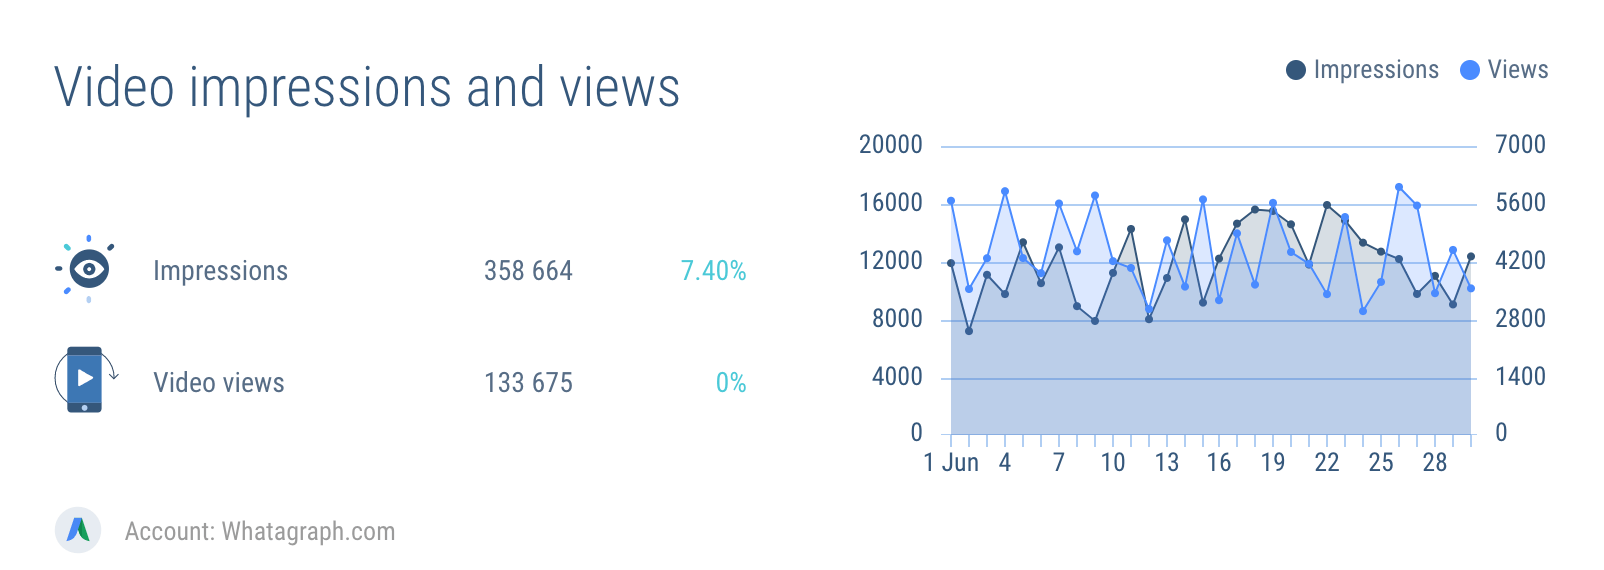 AdWords video impressions and views